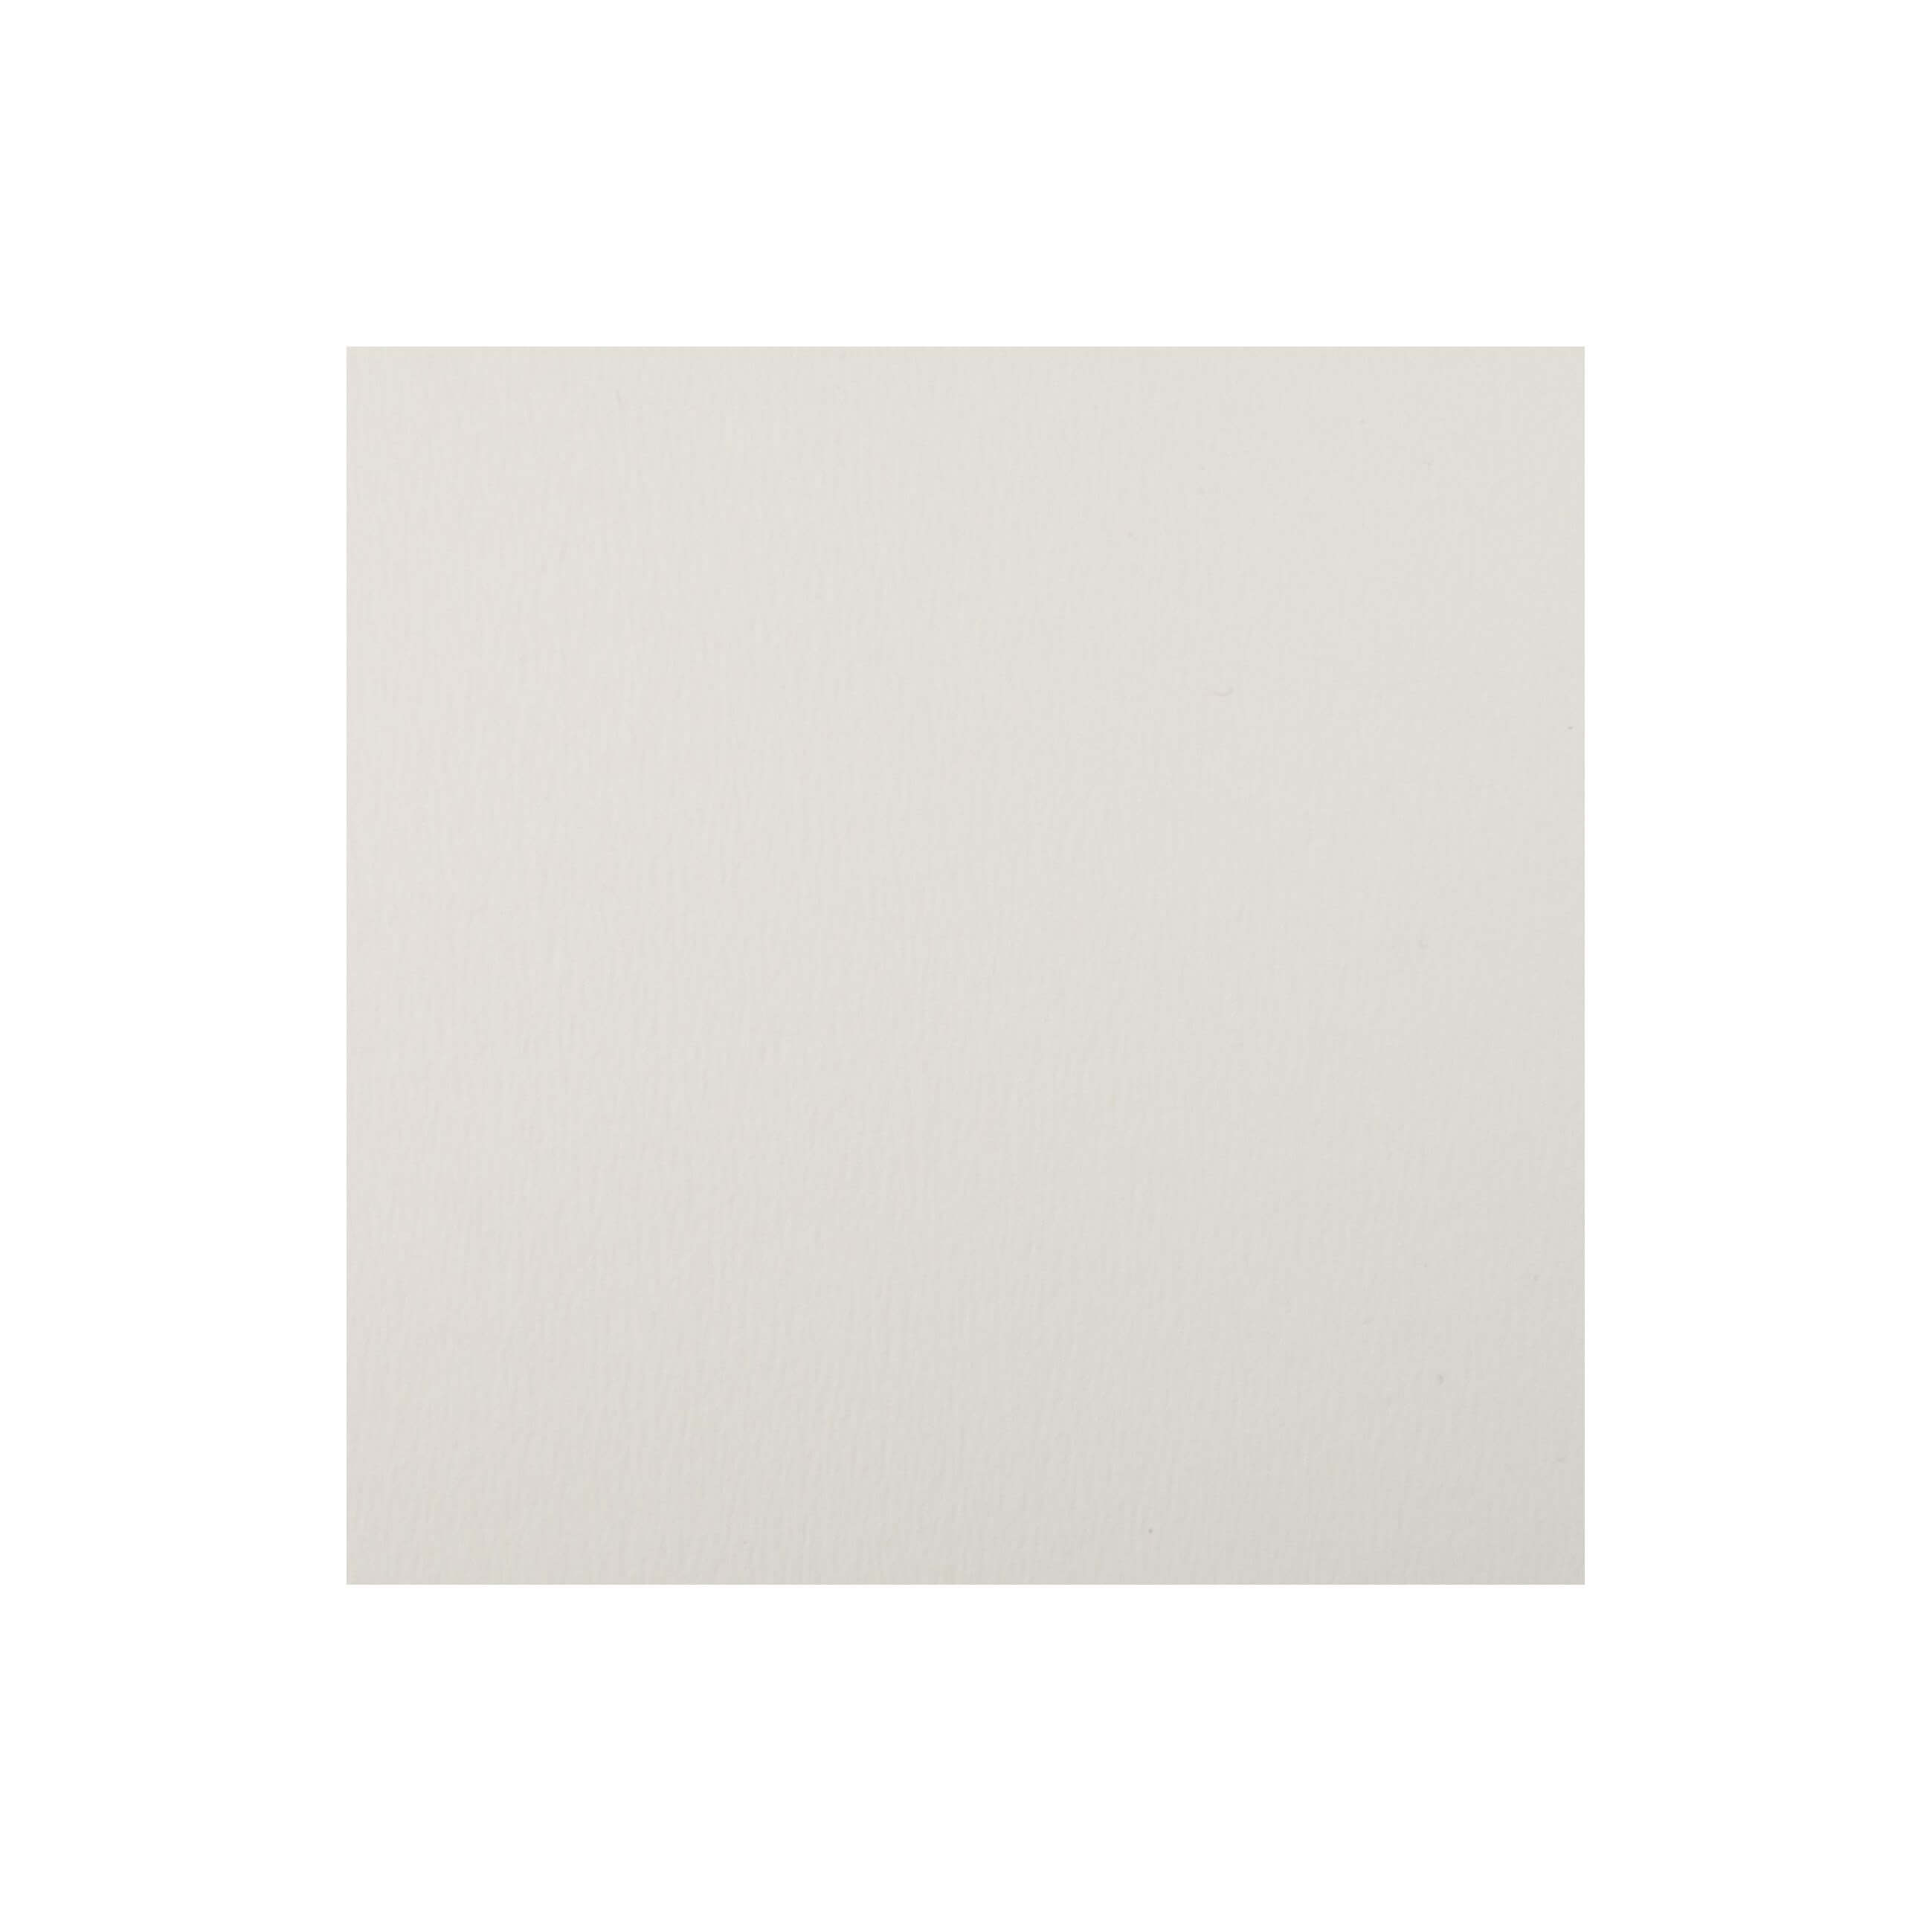 Cardstock 141mm Square - Antique Ivory